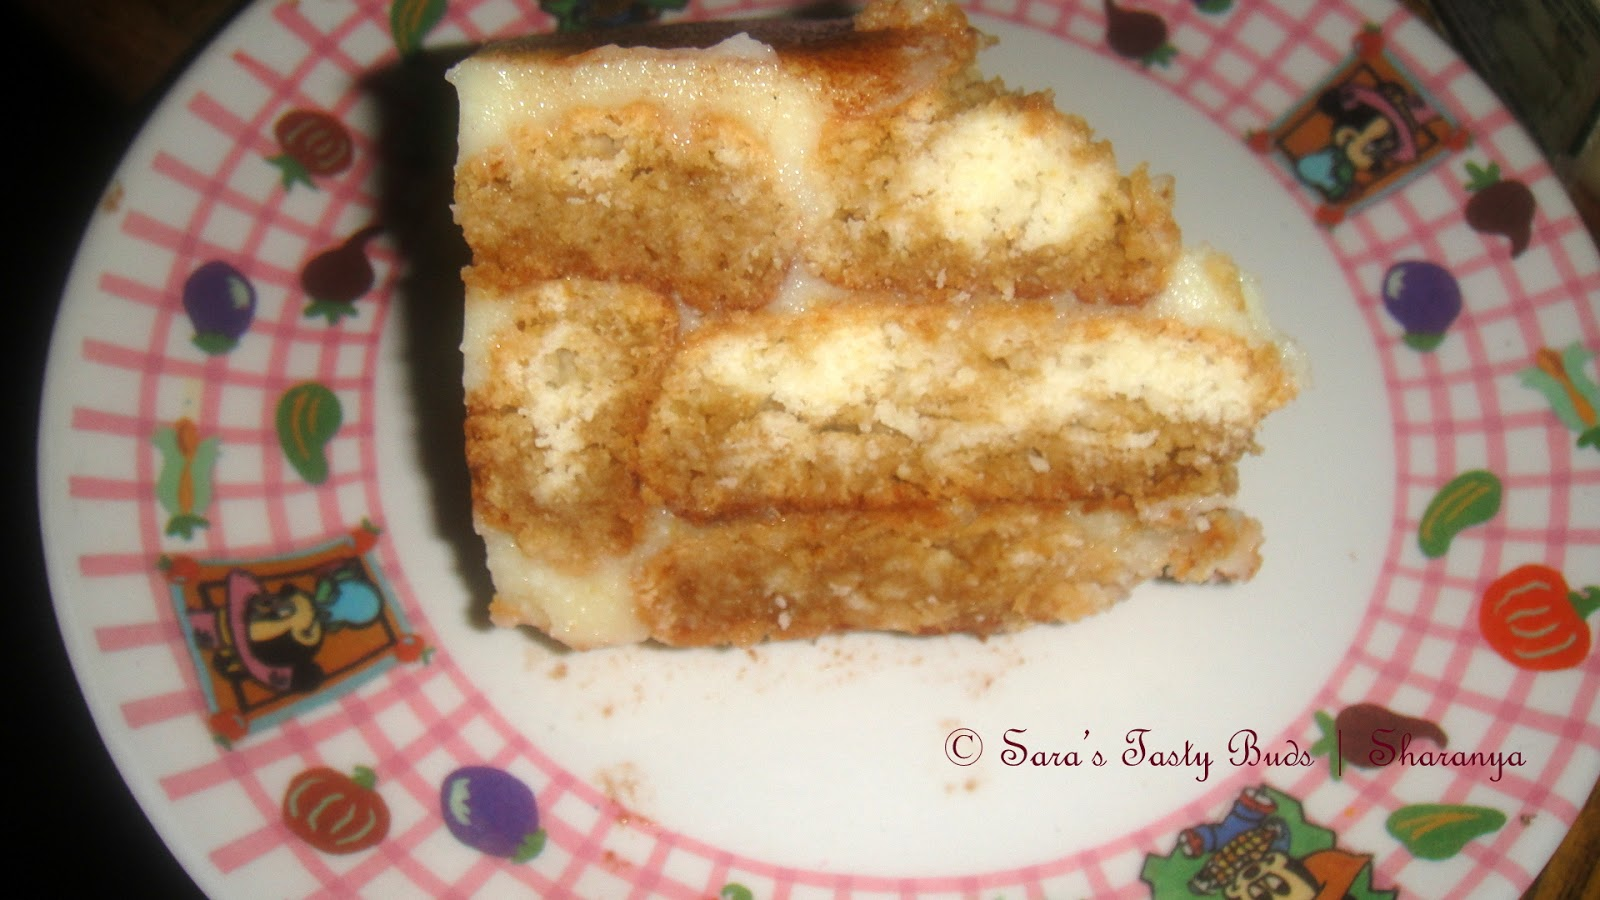 SARA'S TASTY BUDS: Tiramisu - Eggless and Alcohol free